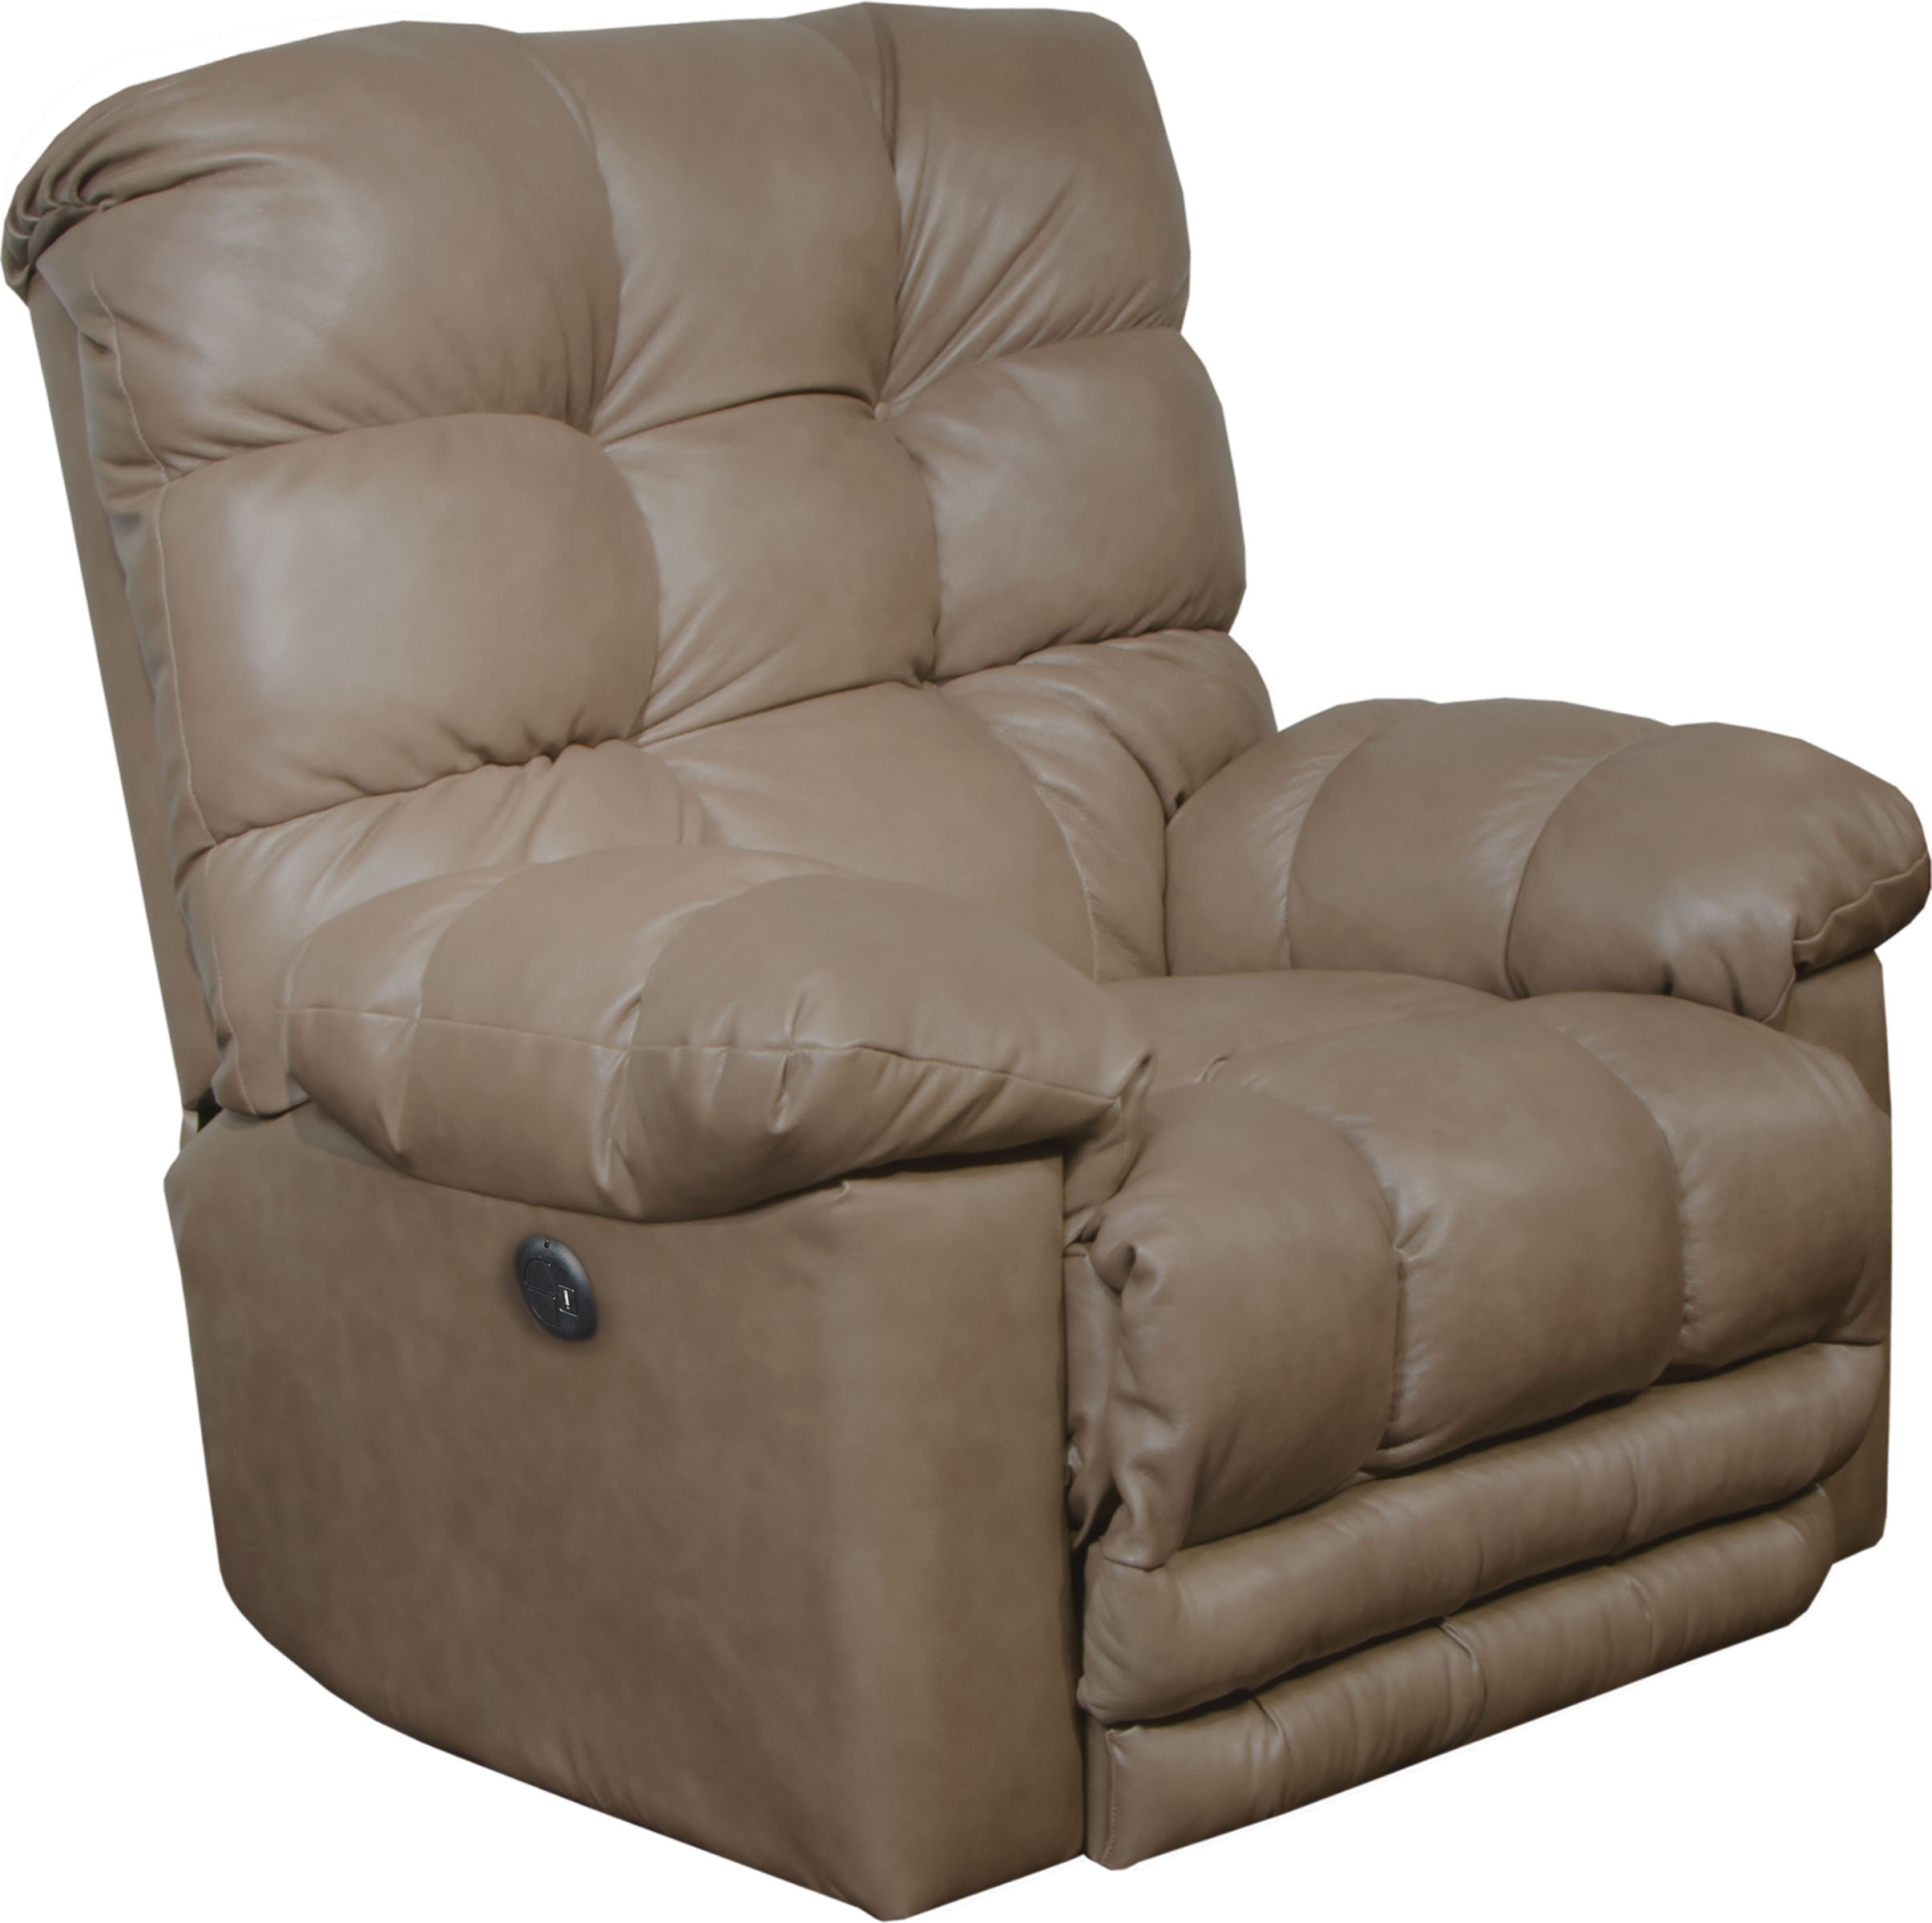 Catnapper Piazza Top Grain Leather Touch Power Lay Flat Recliner withX-tra Comfort Footrest in Smoke